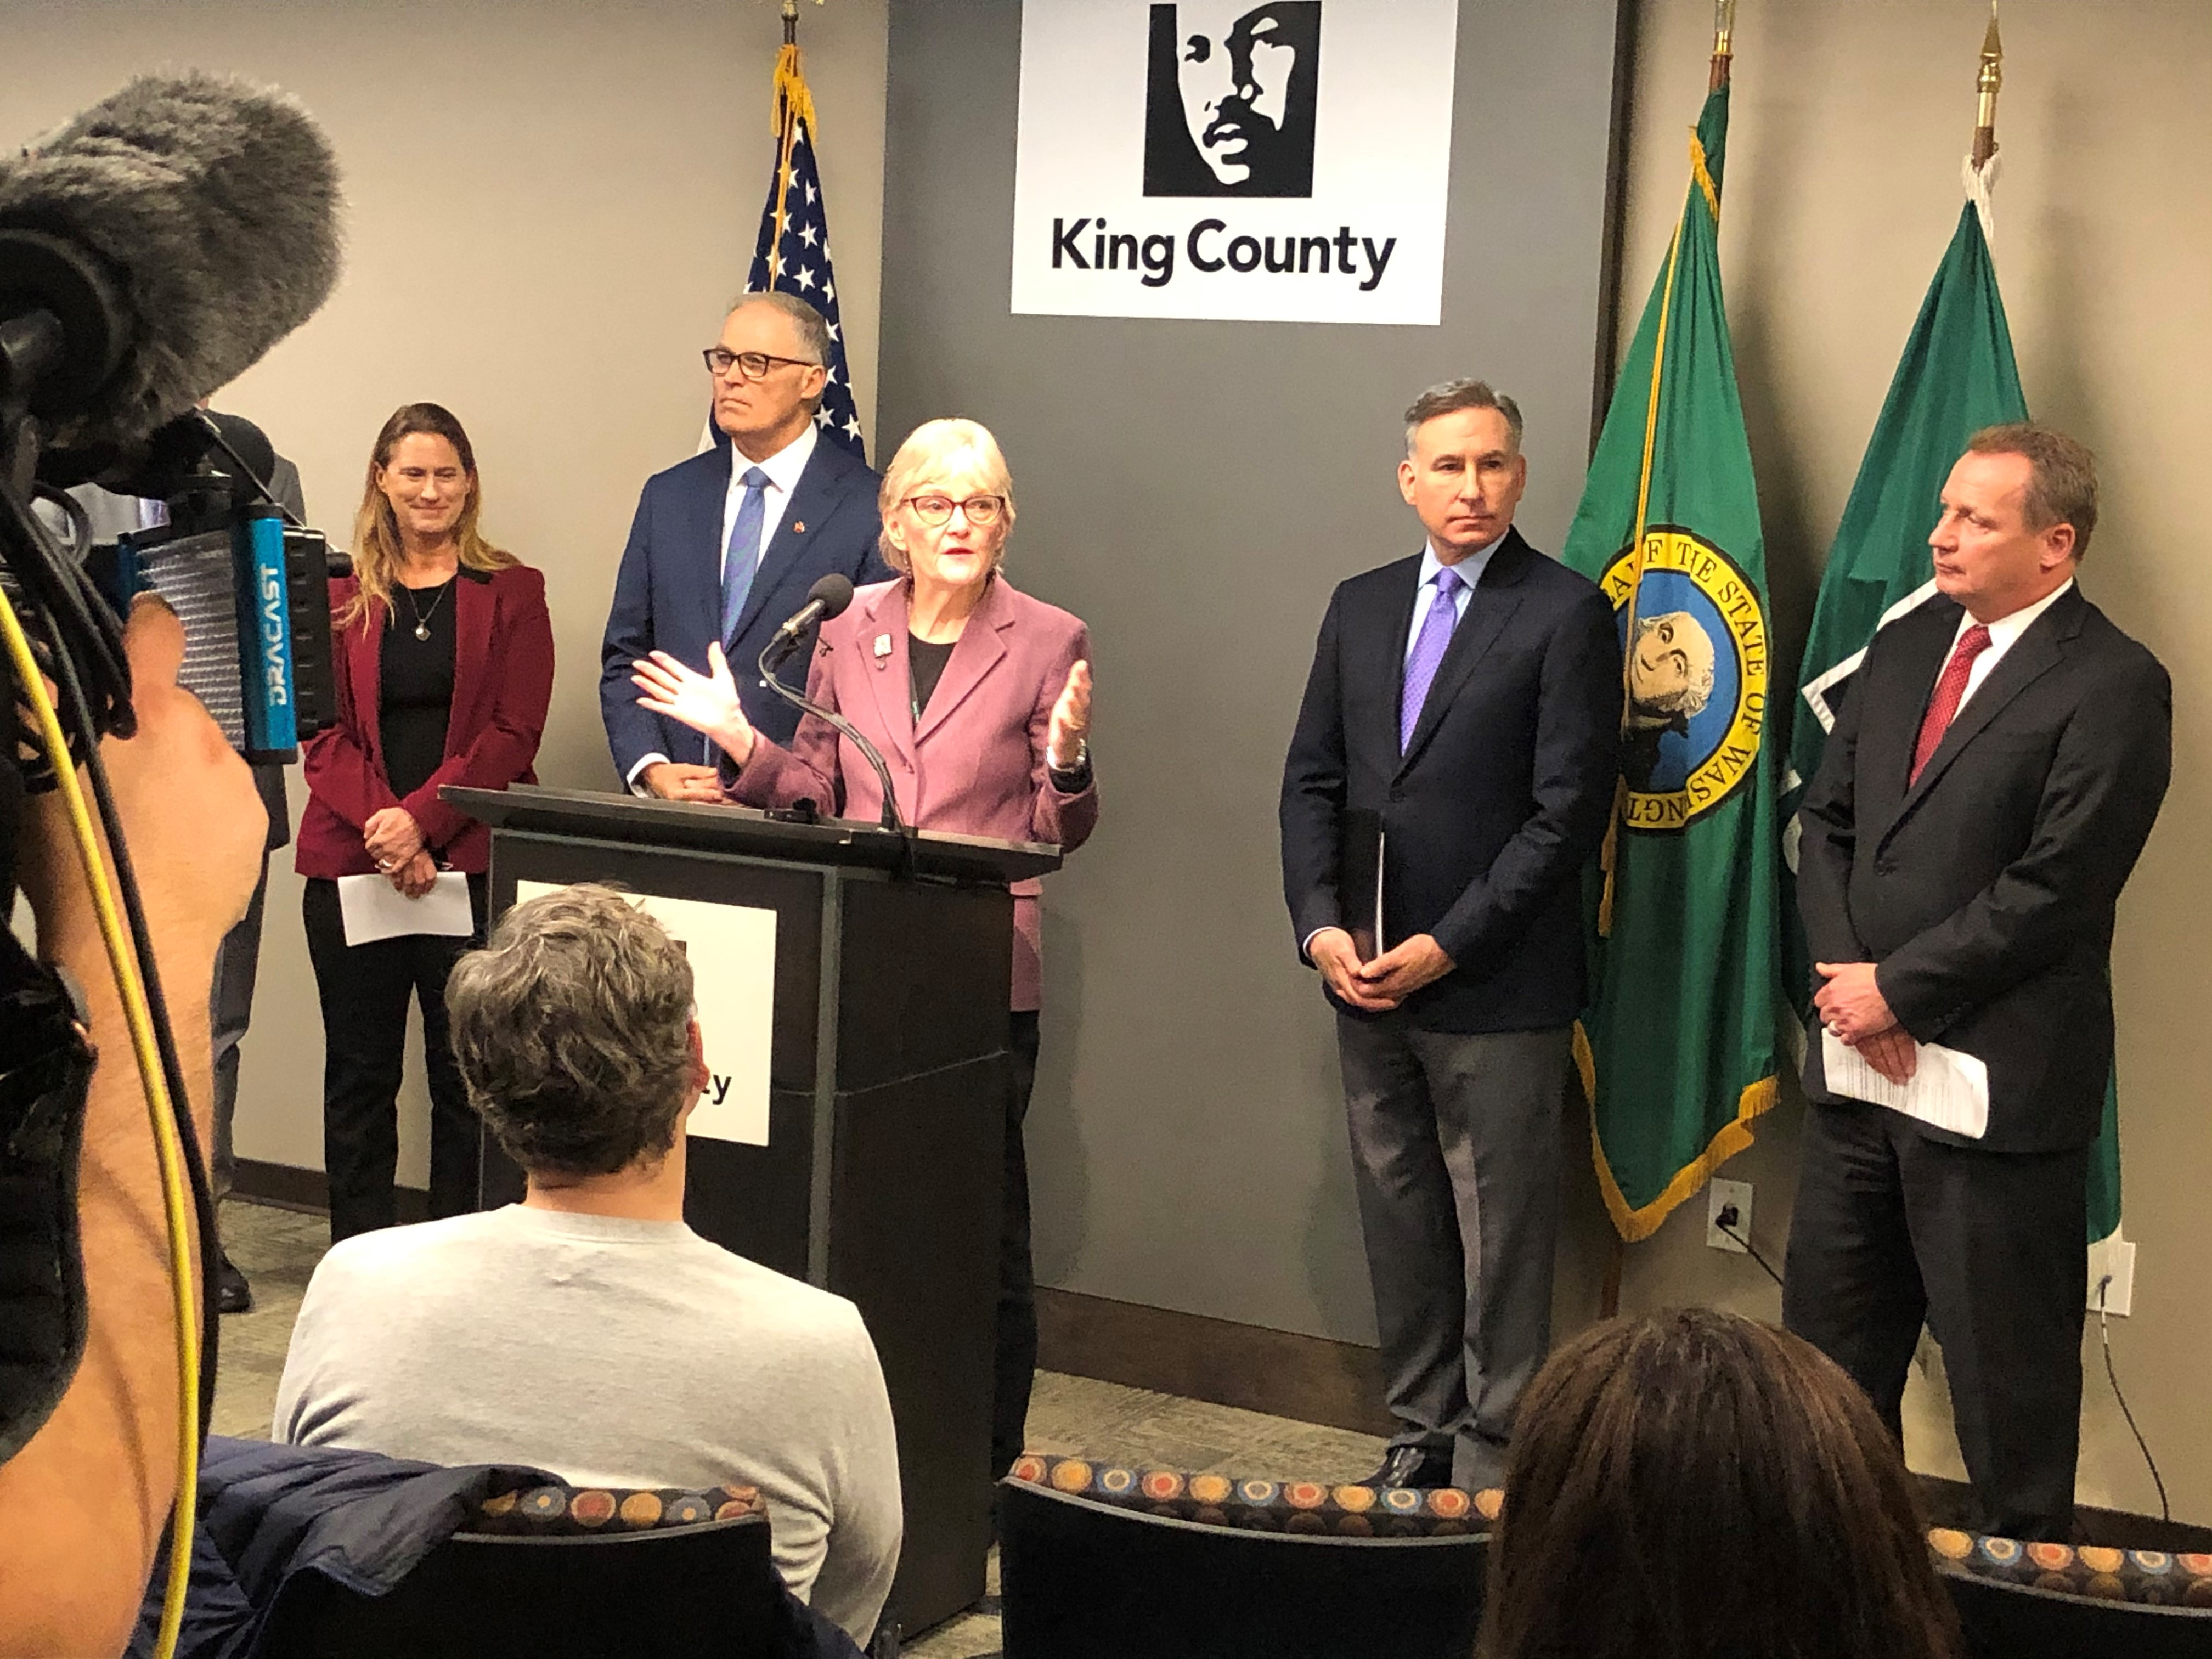 Woman at podium with King County logo behind her. People stand on either side next to flags of U.S. and WA.